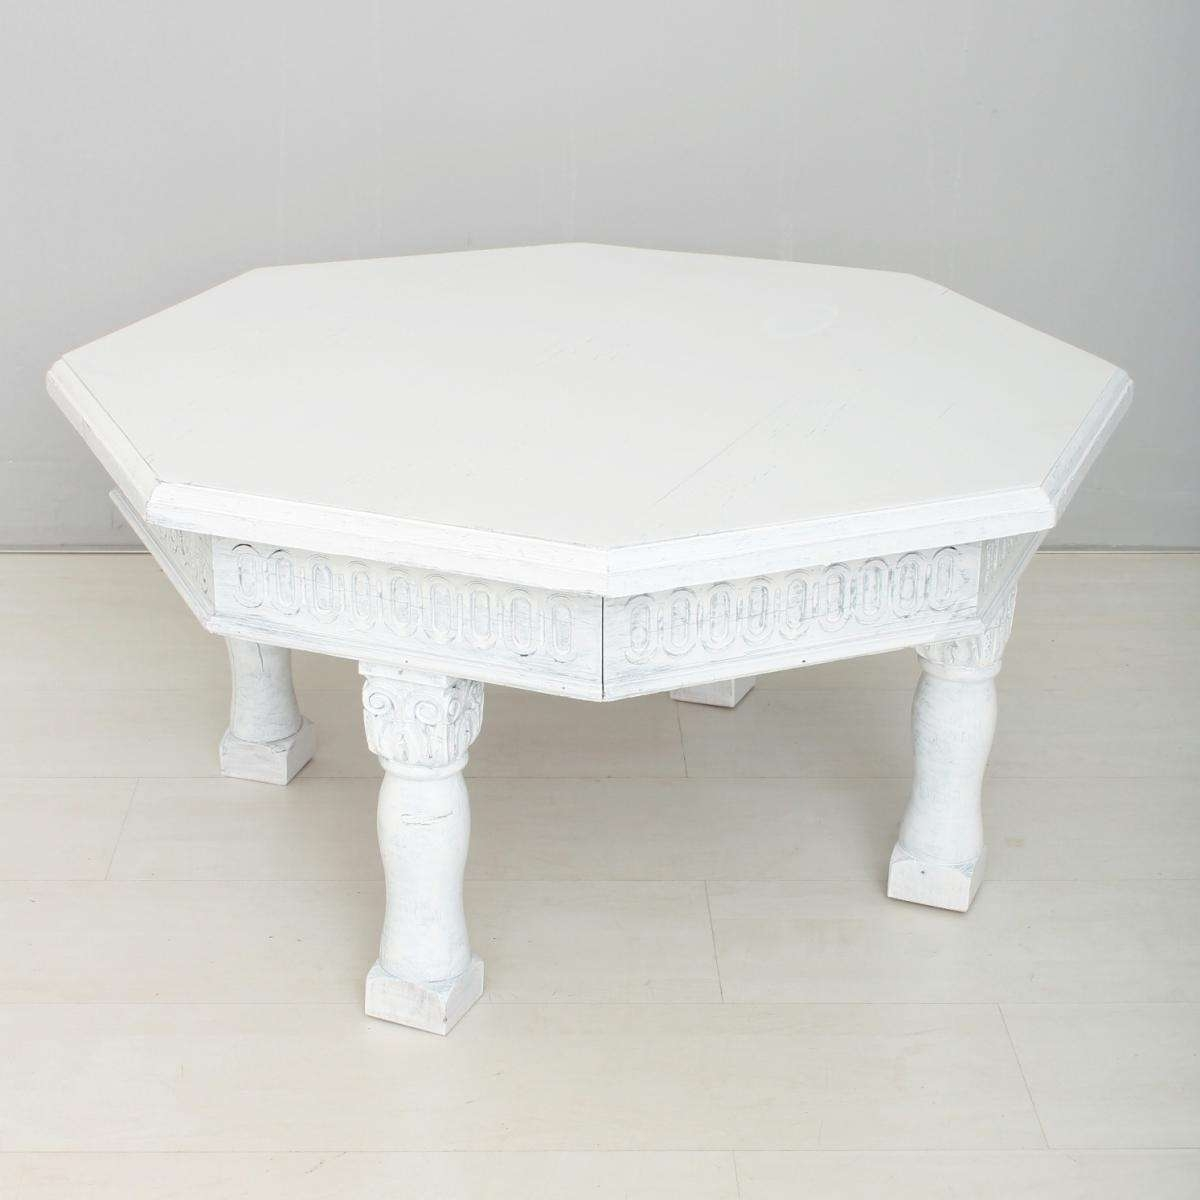 Latest Retro White Coffee Tables In Vintage White Coffee Table For Sale At Pamono (View 14 of 20)